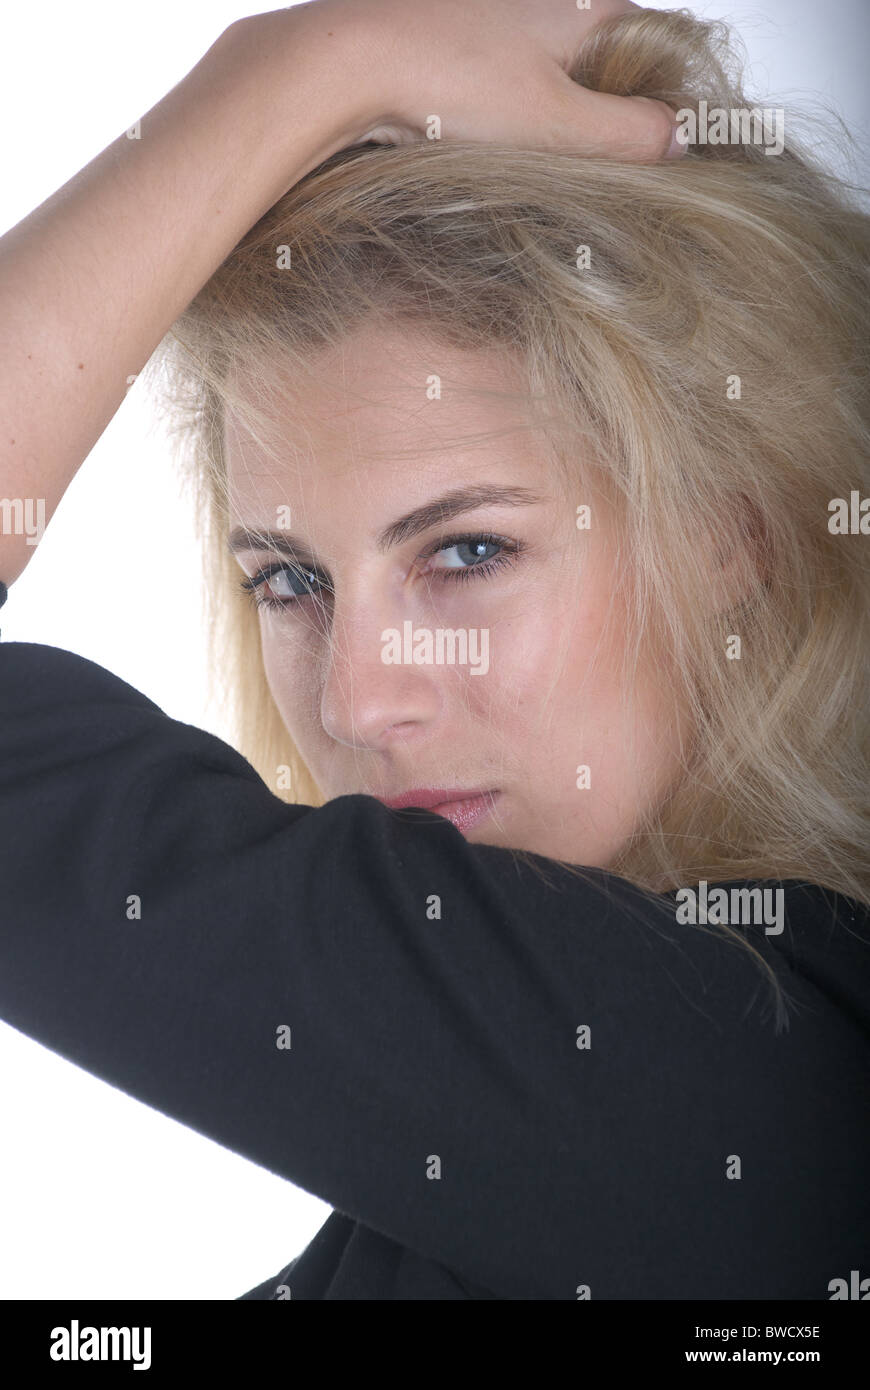 German woman portrait - Stock Image